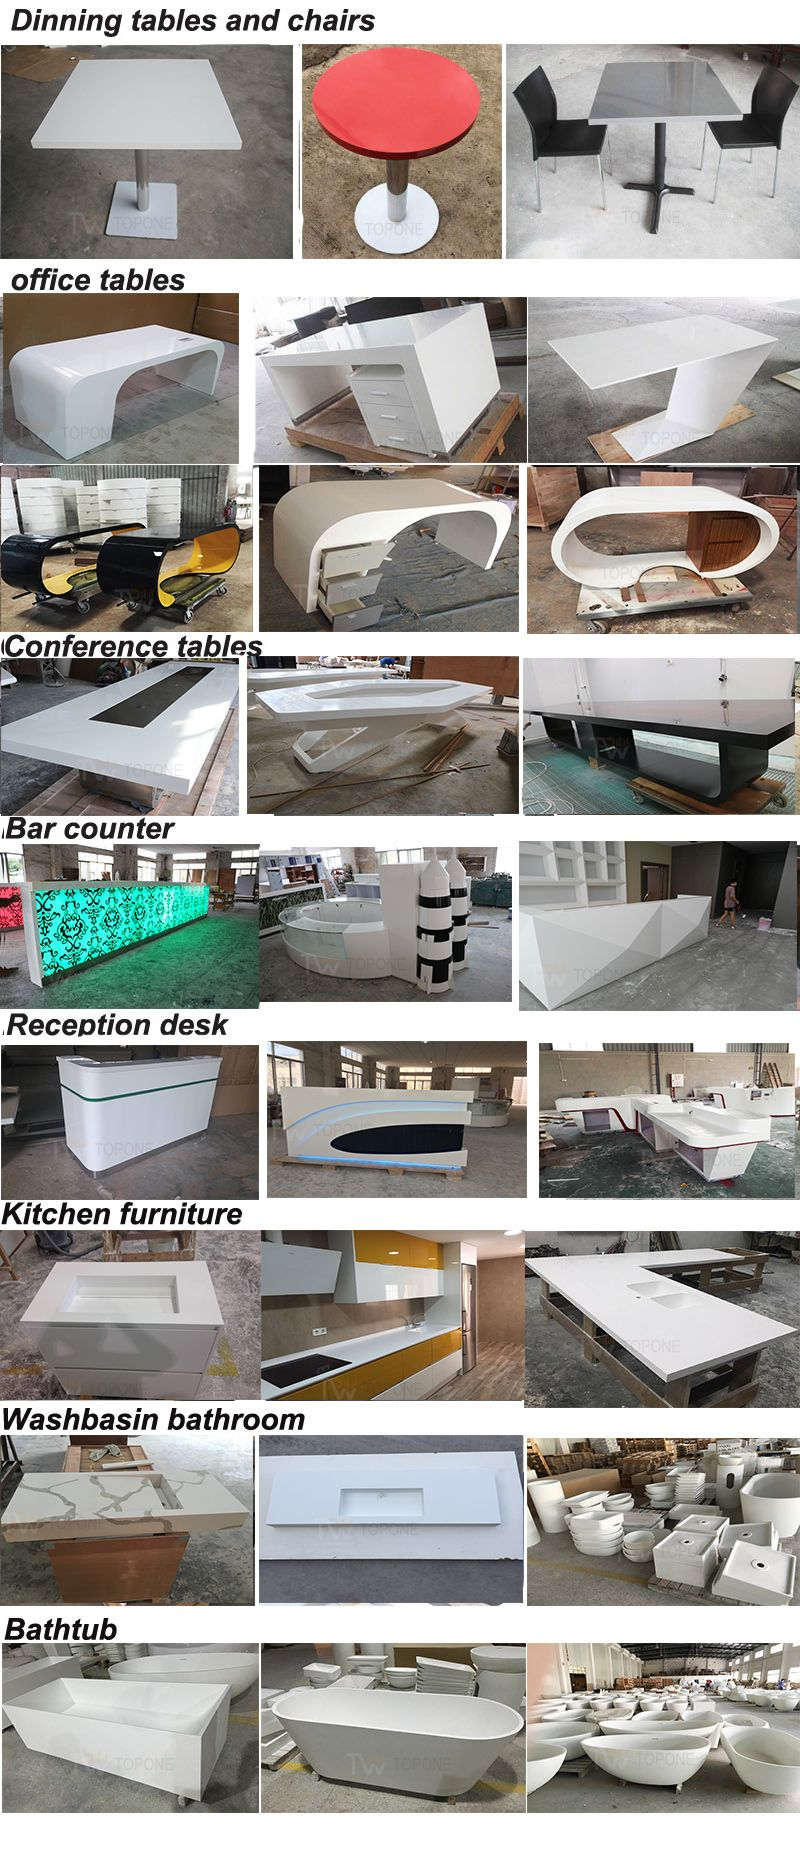 corian furniture.jpg